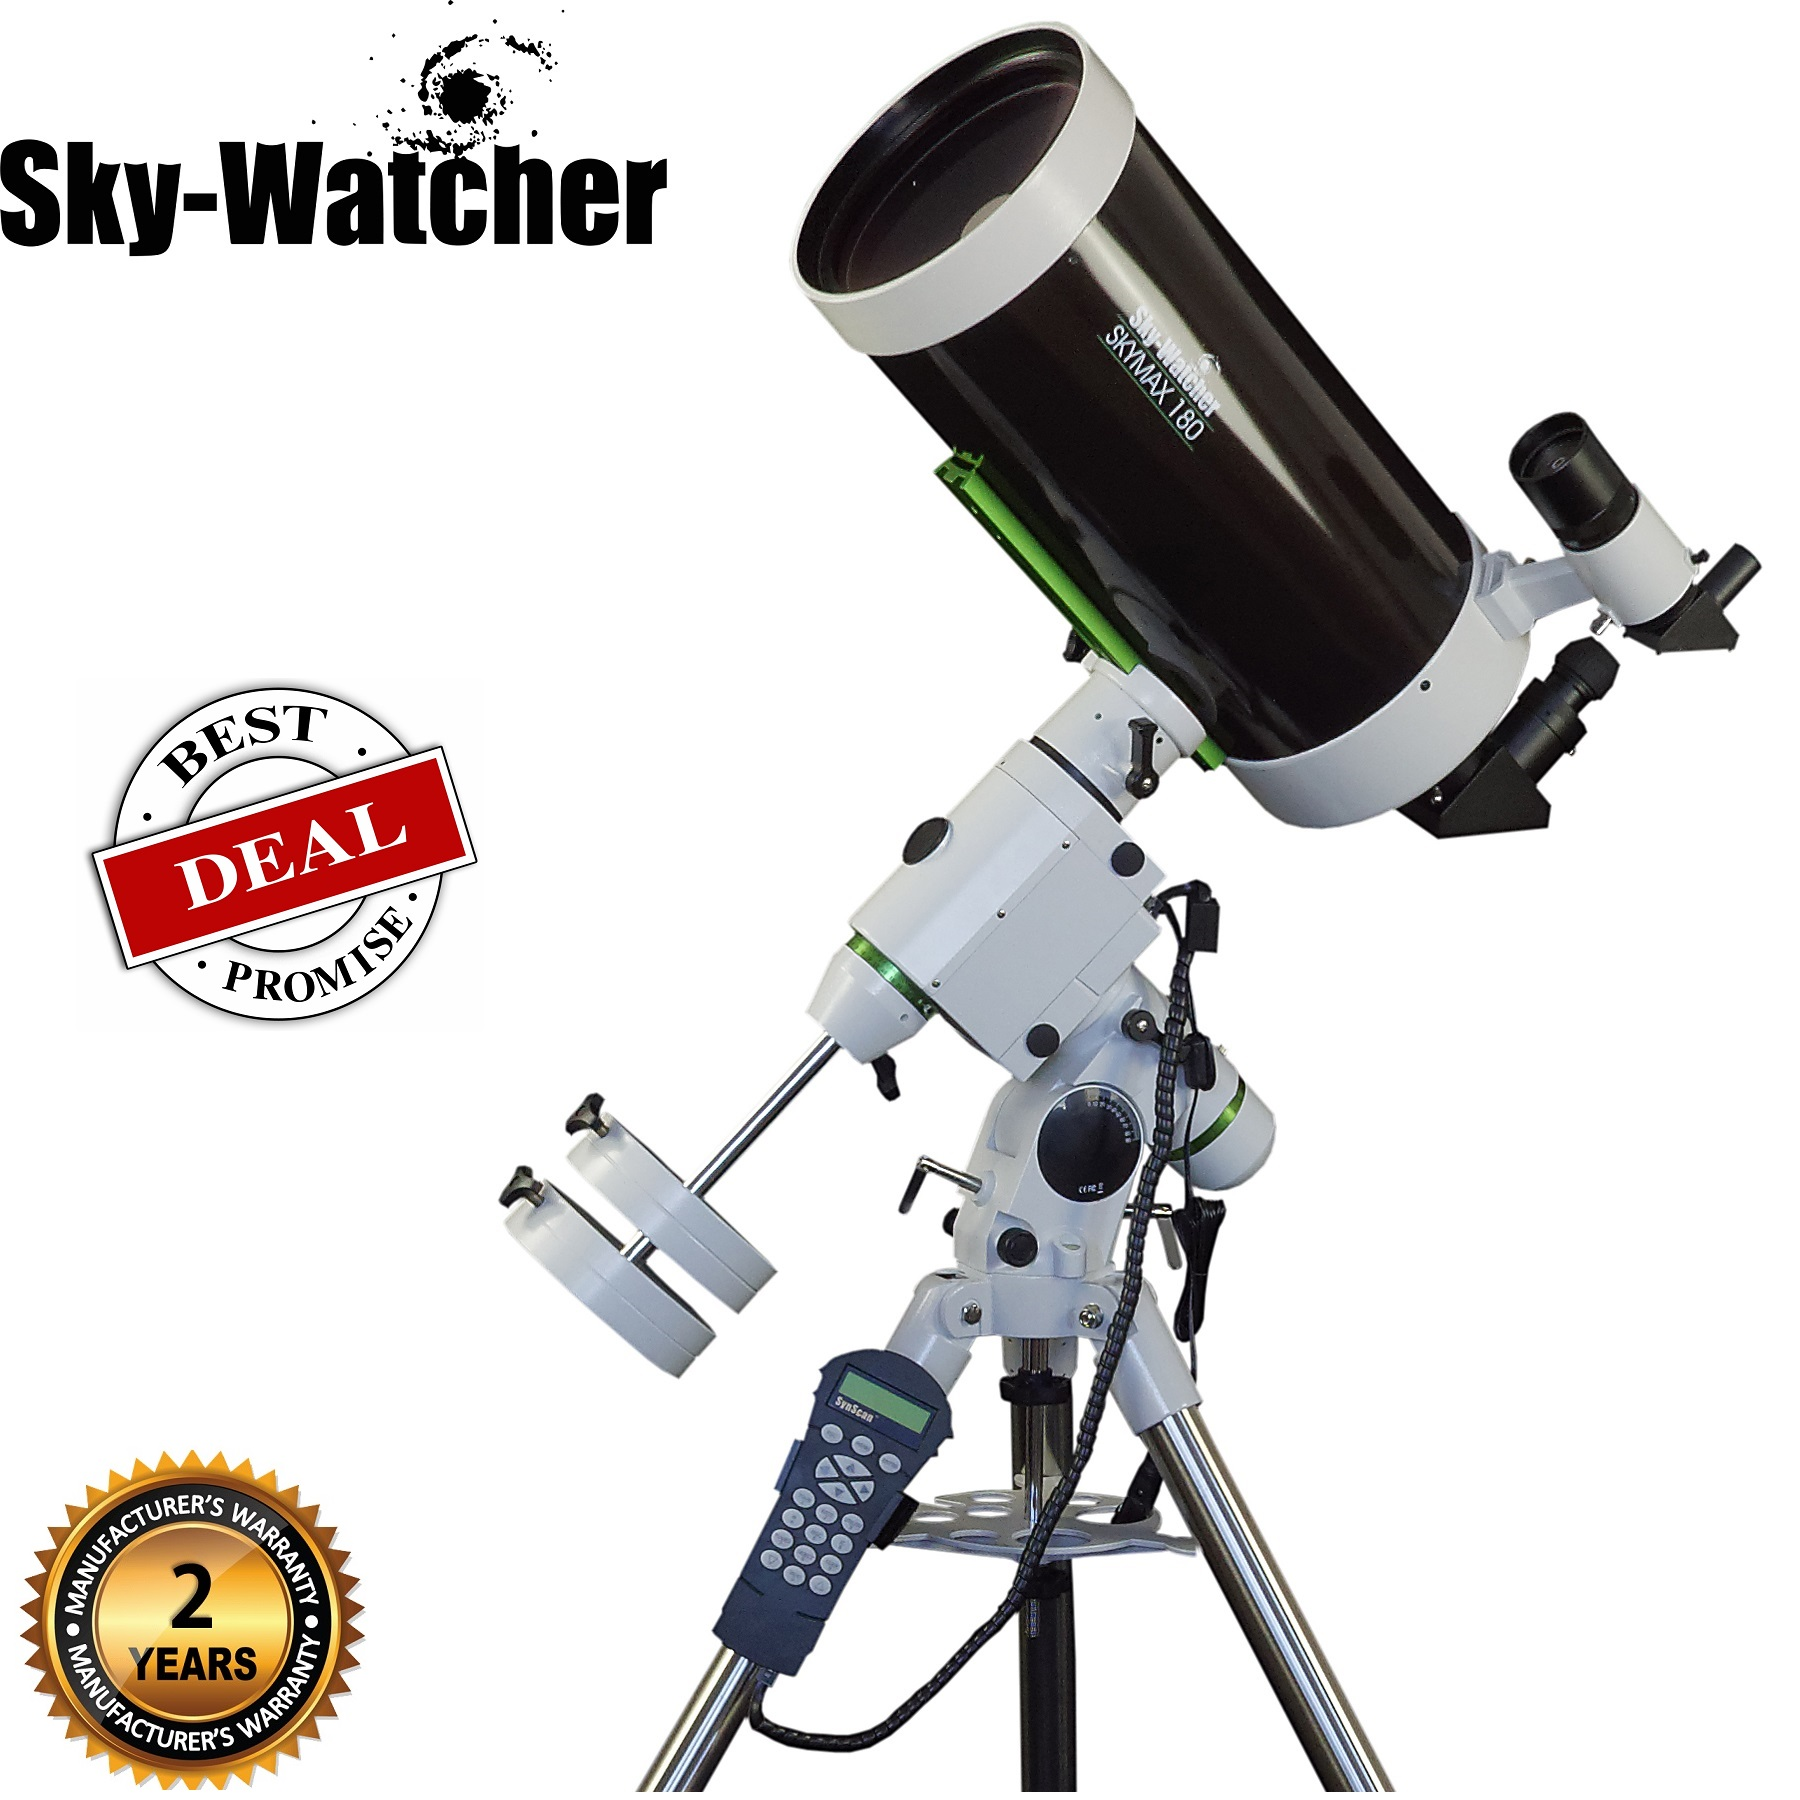 Skywatcher Skymax-180 HEQ5 PRO SynScan Computerized Telescope